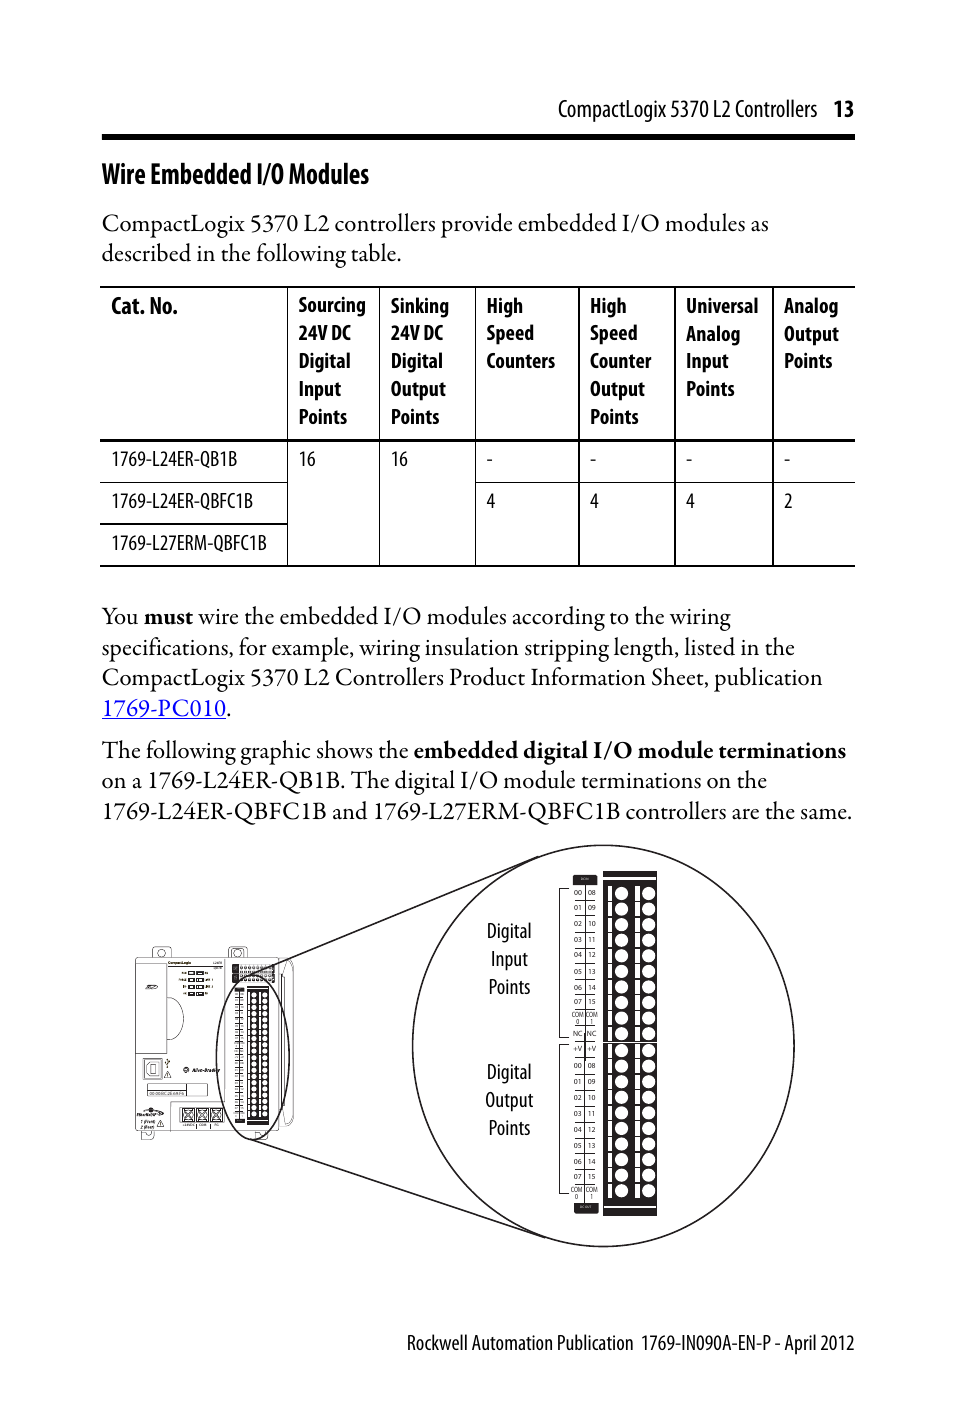 Wire Embedded I O Modules Digital Input Points Digital Output Points Dc Input 24vdc Sink Source 24vdc Source Output Dc Rockwell Automation 1769 L24er Qb1b Qbfc1b Qbfc1b Compactlogix 5370 L2 Controllers Installation Instructions User Manual